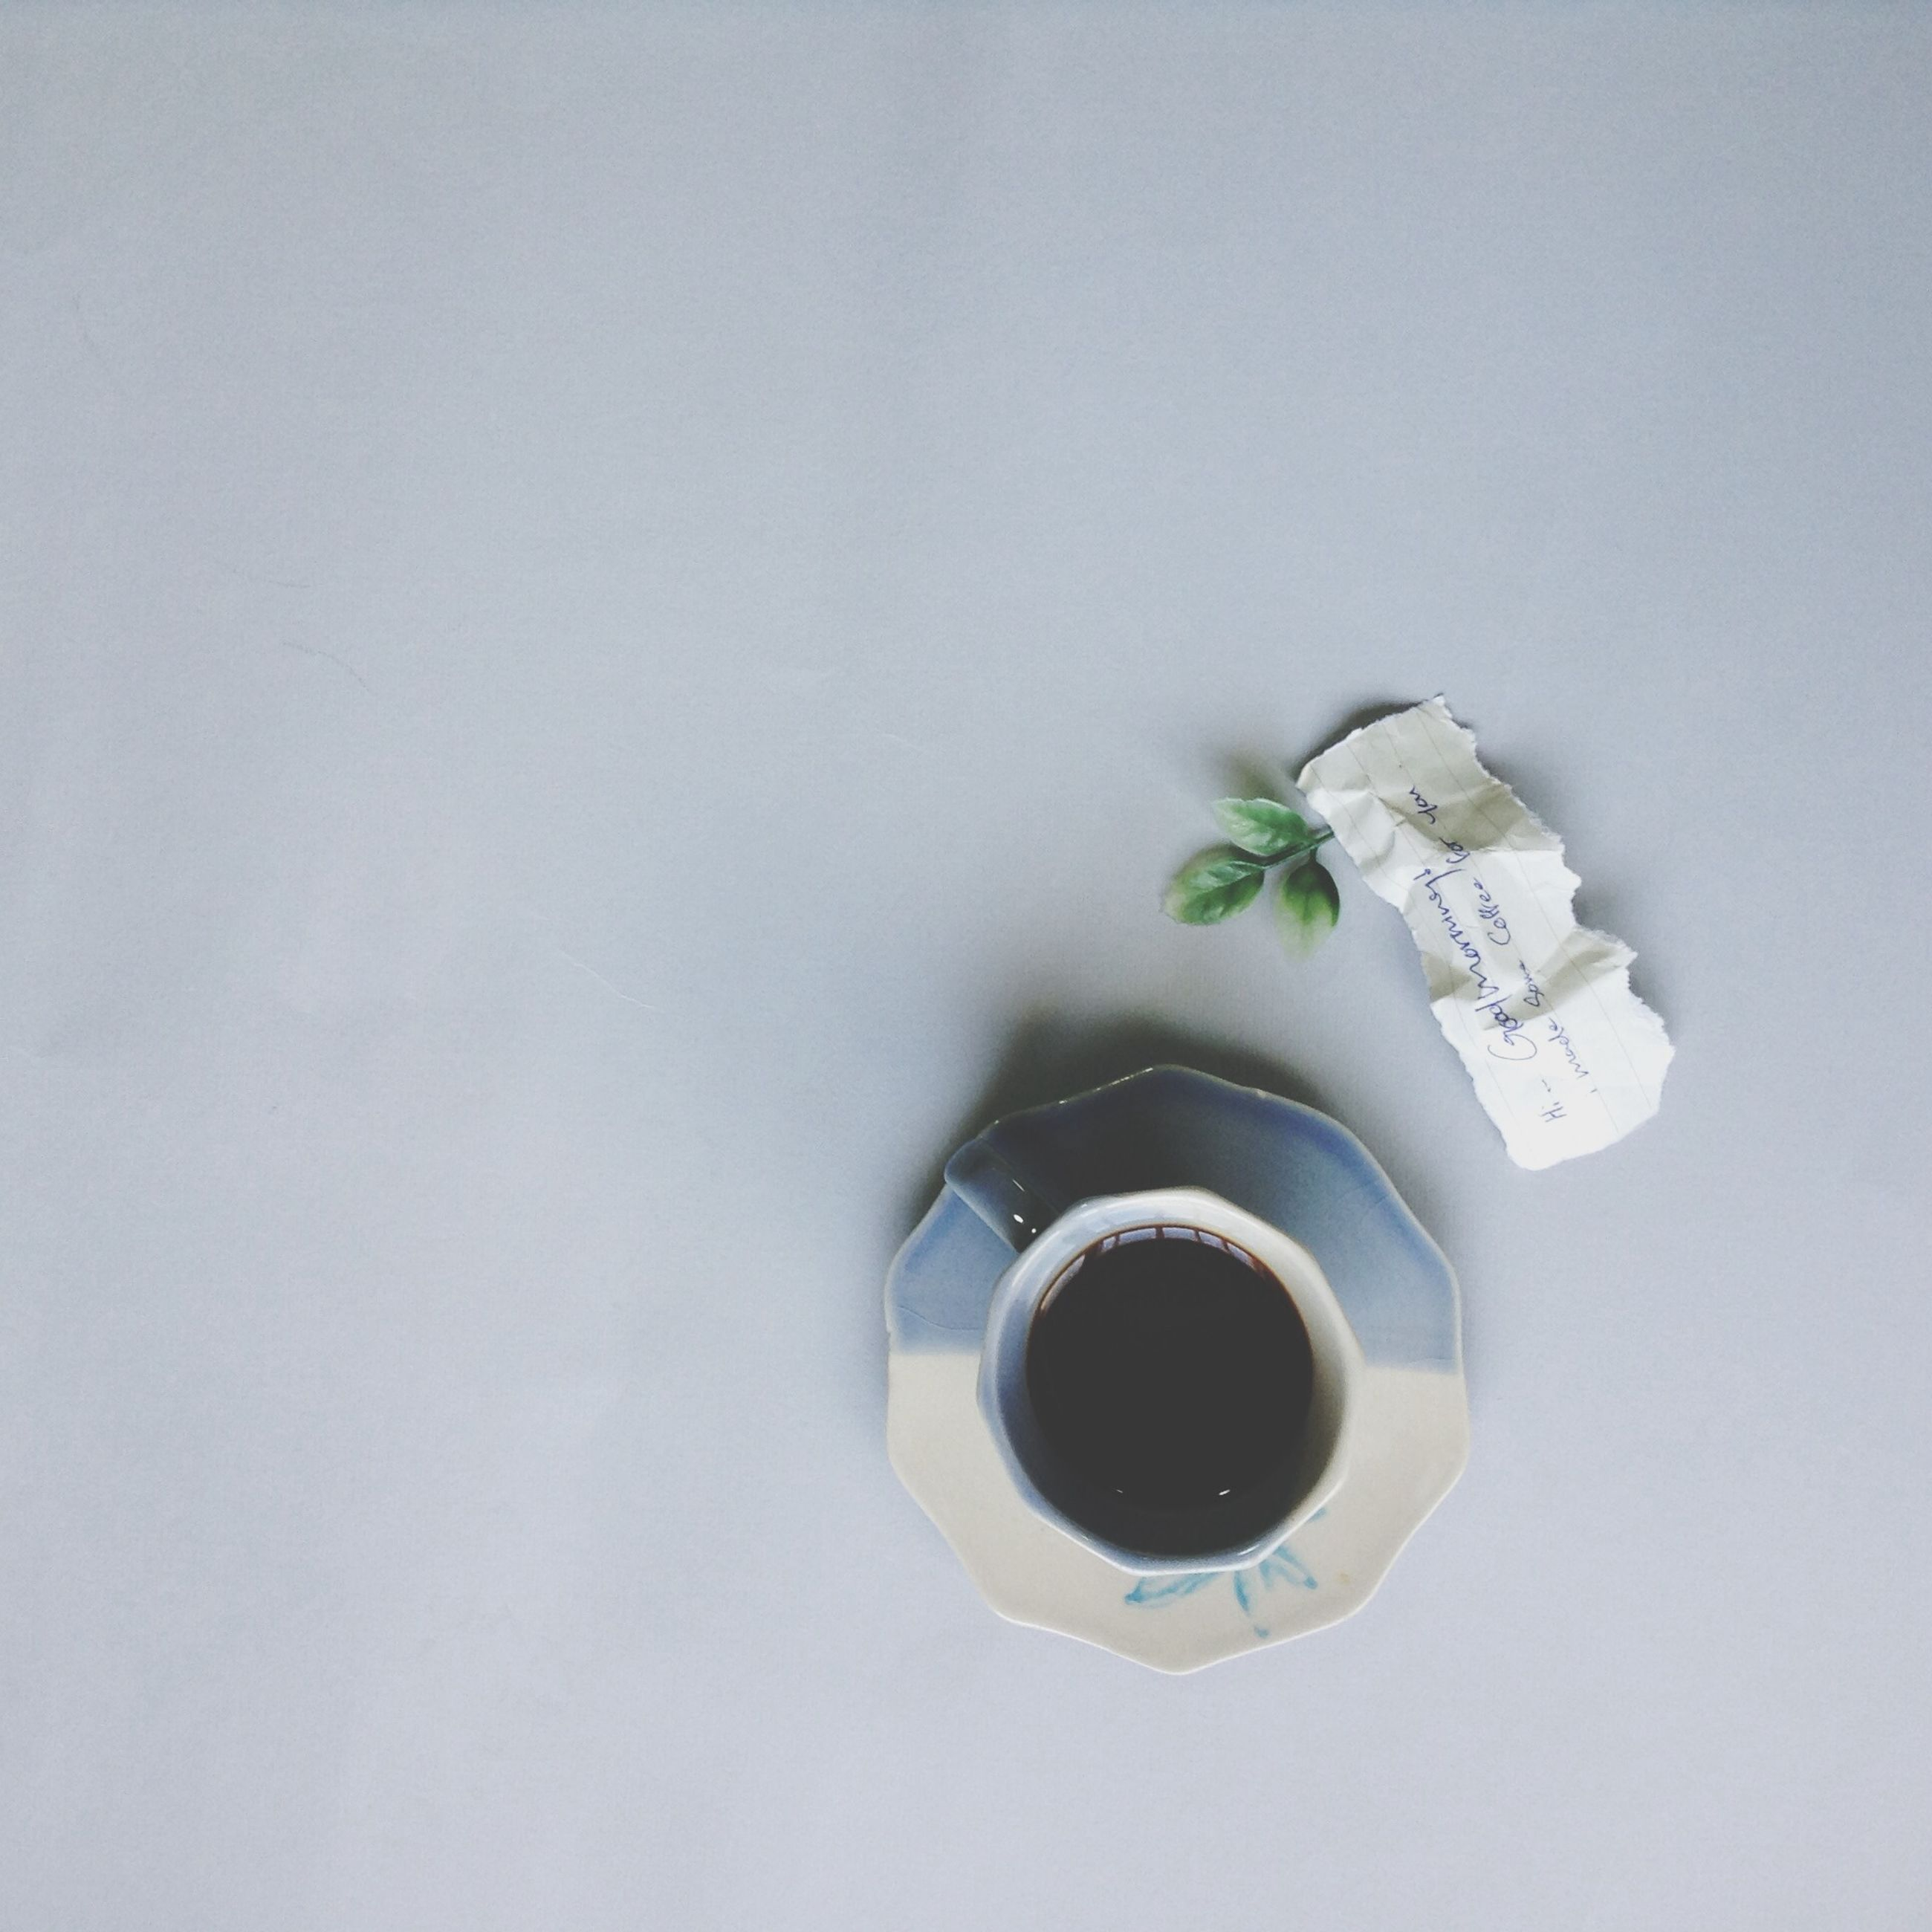 indoors, still life, copy space, white color, white background, studio shot, single object, wall - building feature, table, no people, close-up, coffee cup, directly above, high angle view, white, circle, man made object, metal, built structure, geometric shape